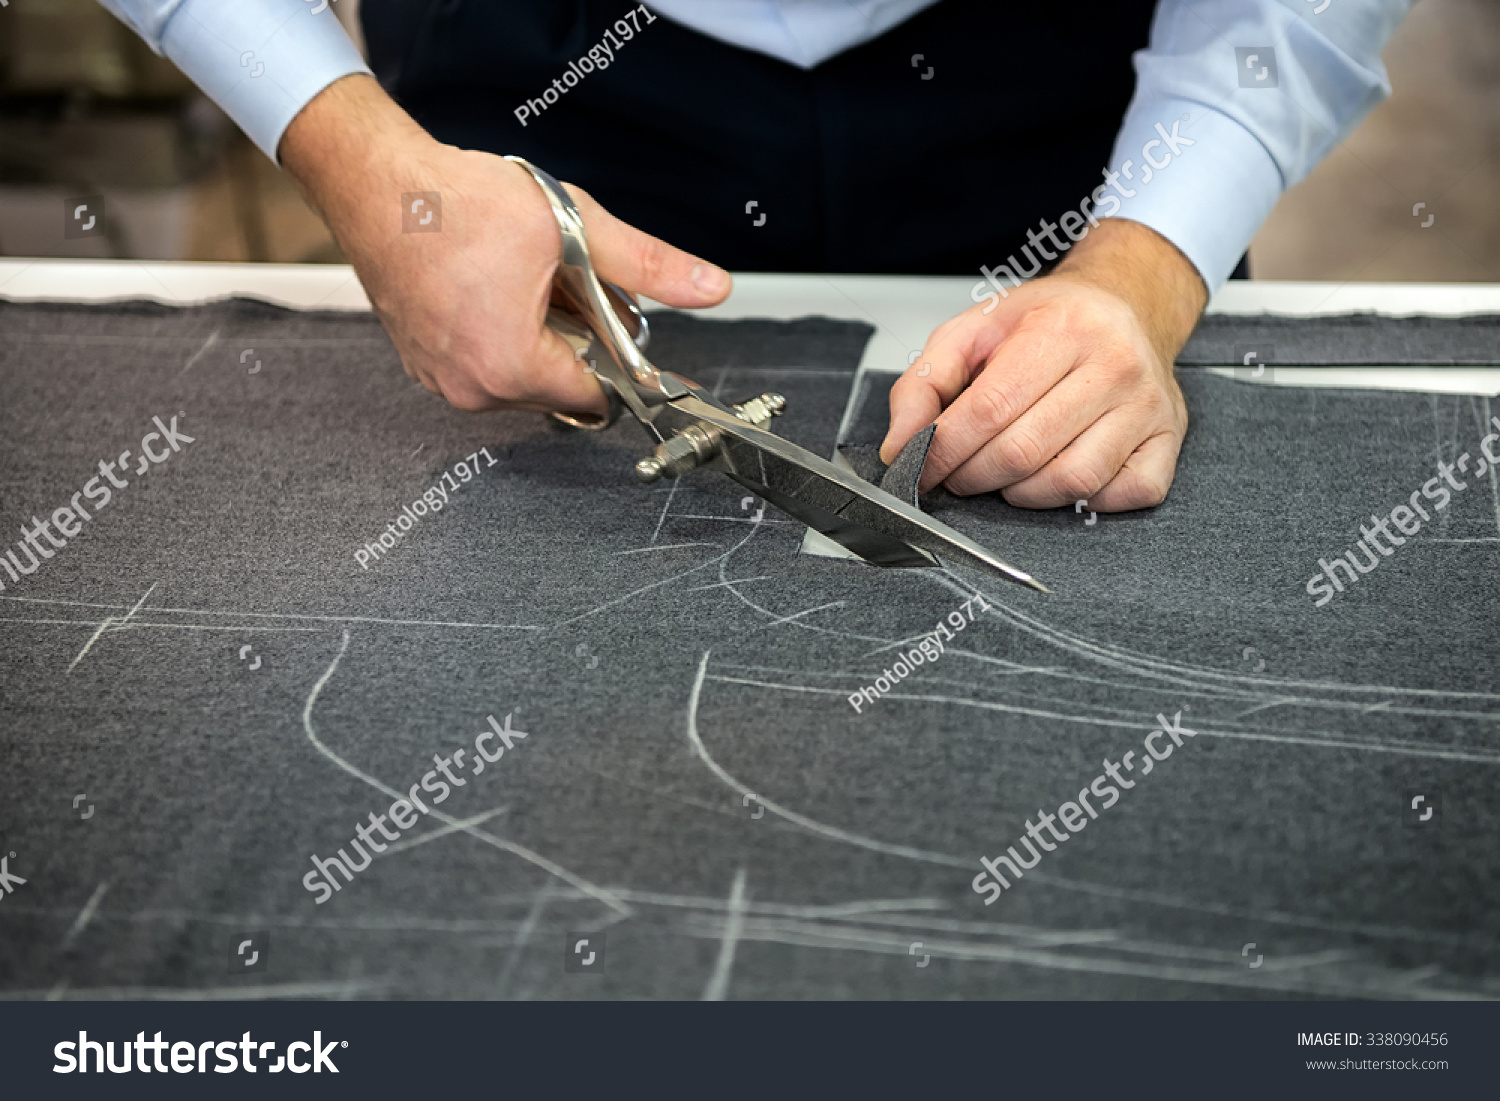 Tailor Cutting Fabric Using Large Scissors Or Shears As He